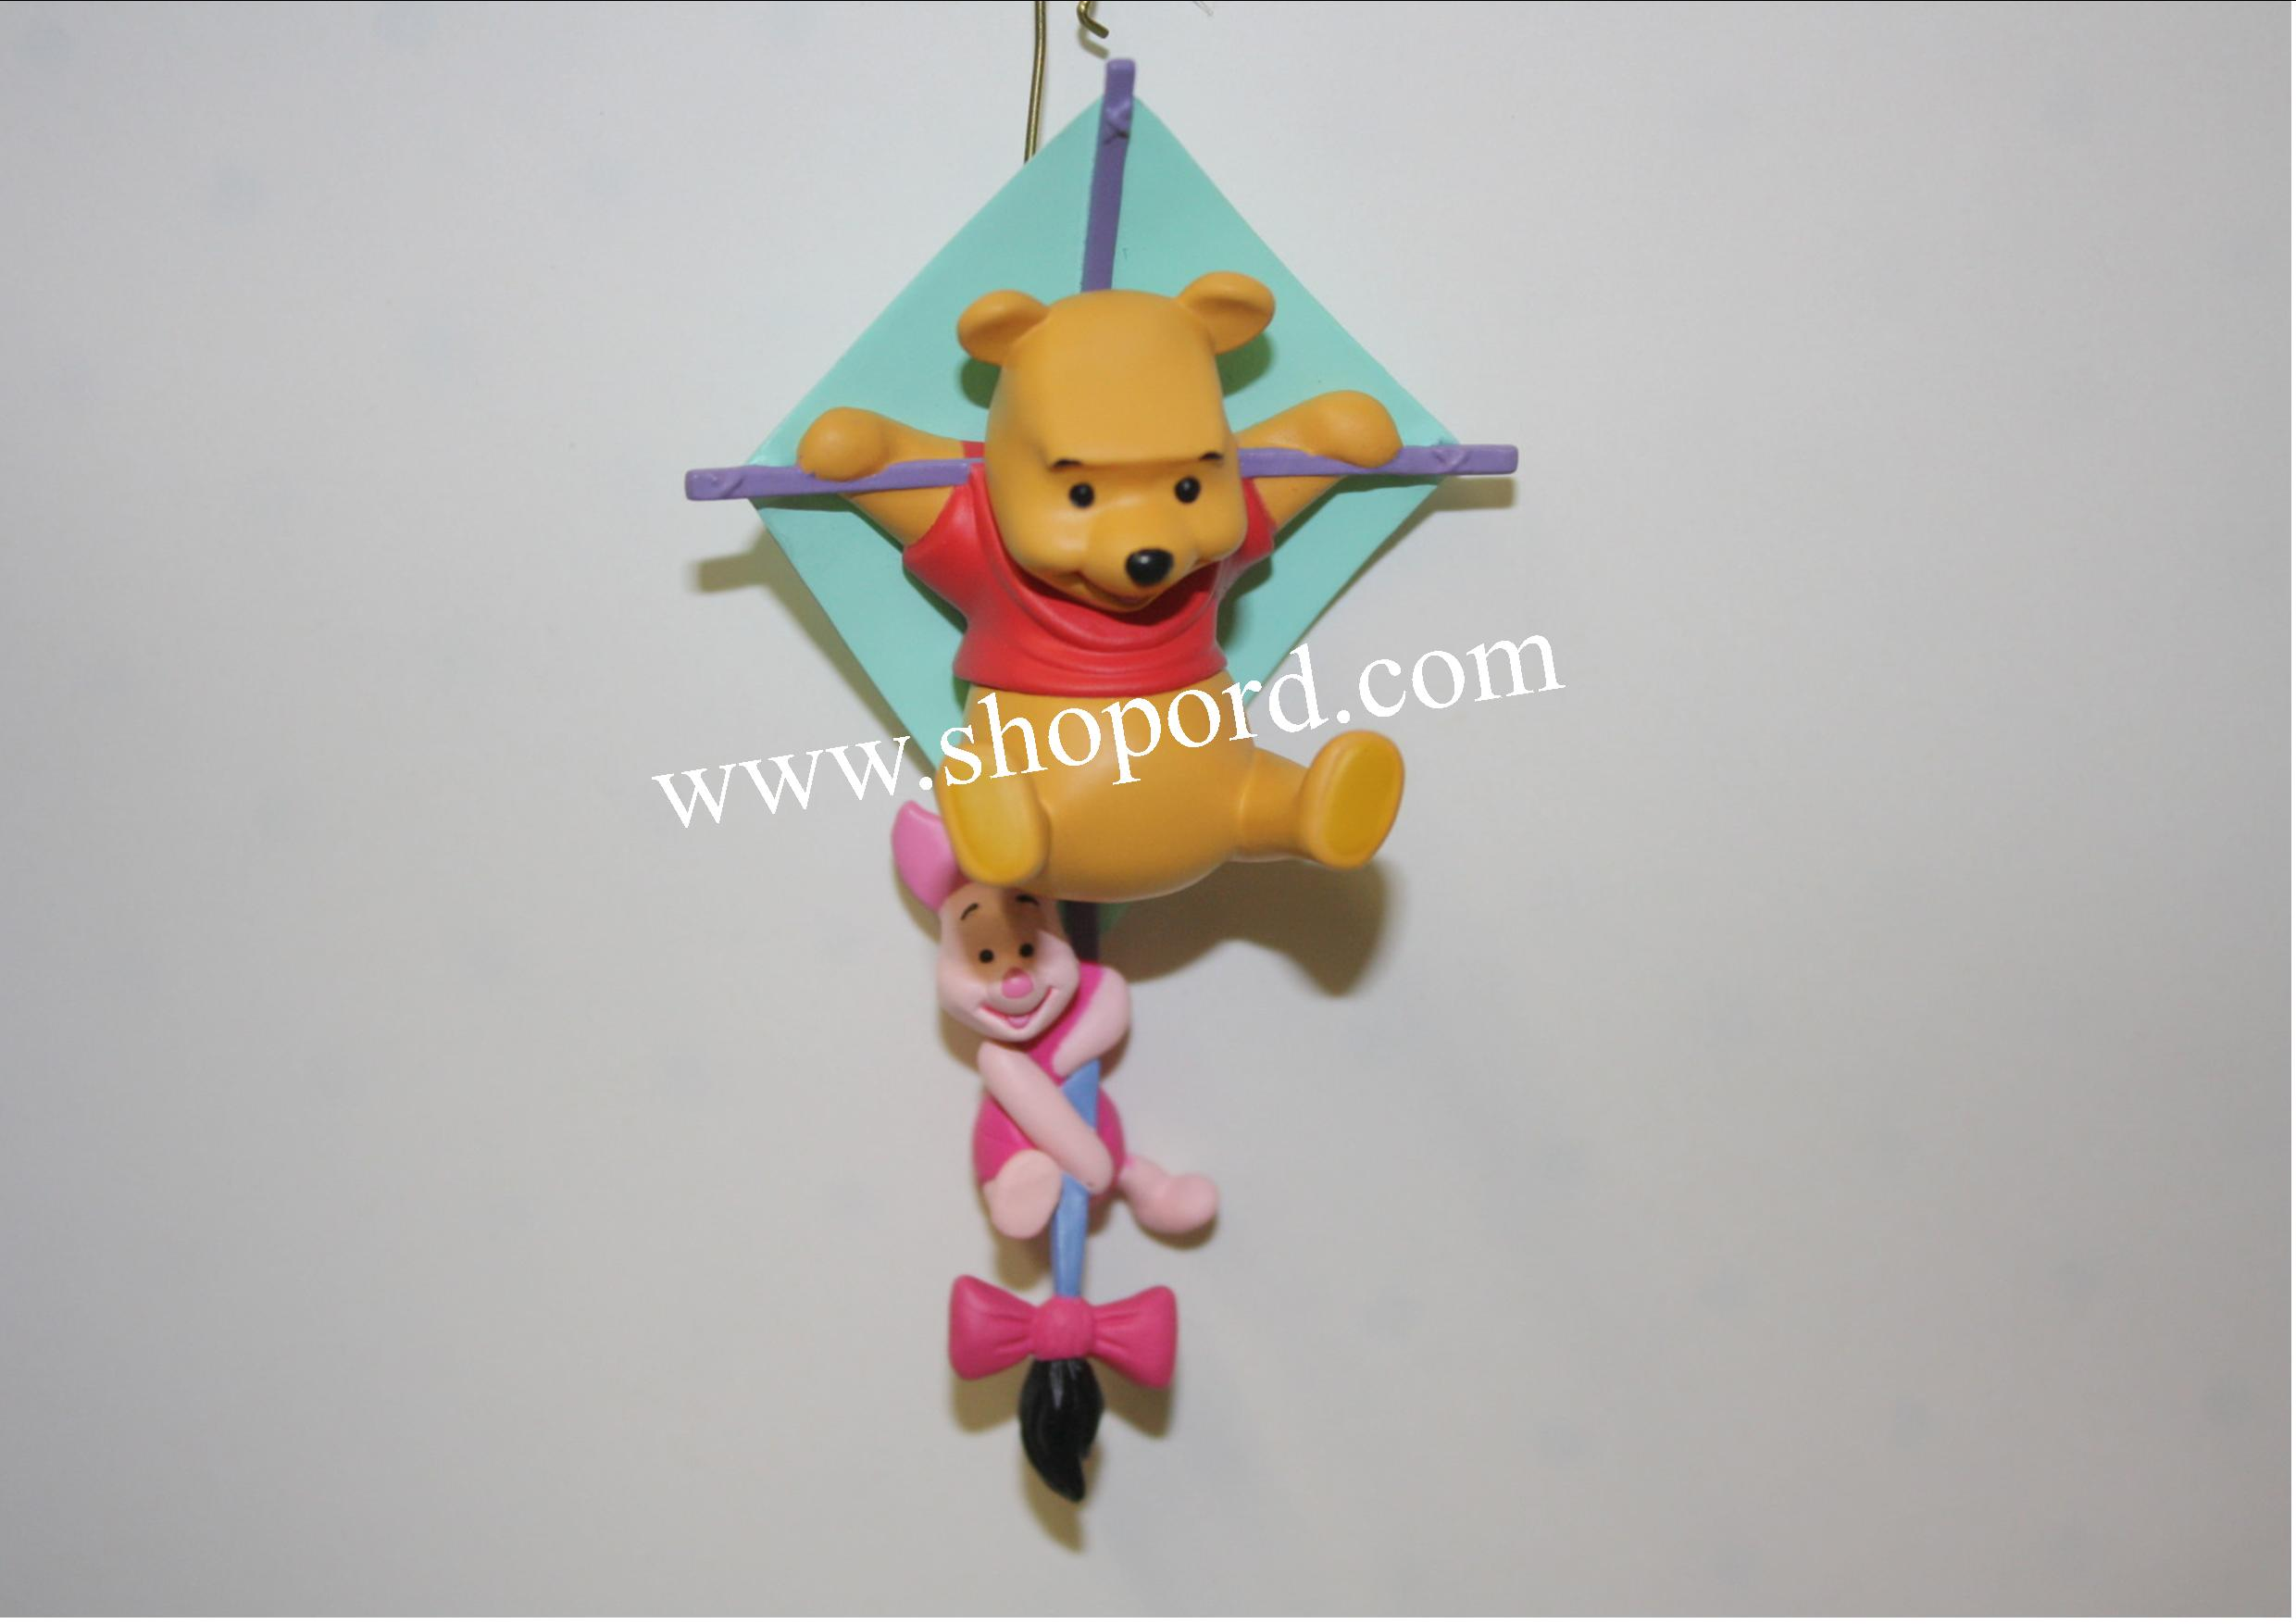 Hallmark 2001 Riding On The Breeze Winnie The Pooh Spring Ornament QEO8616